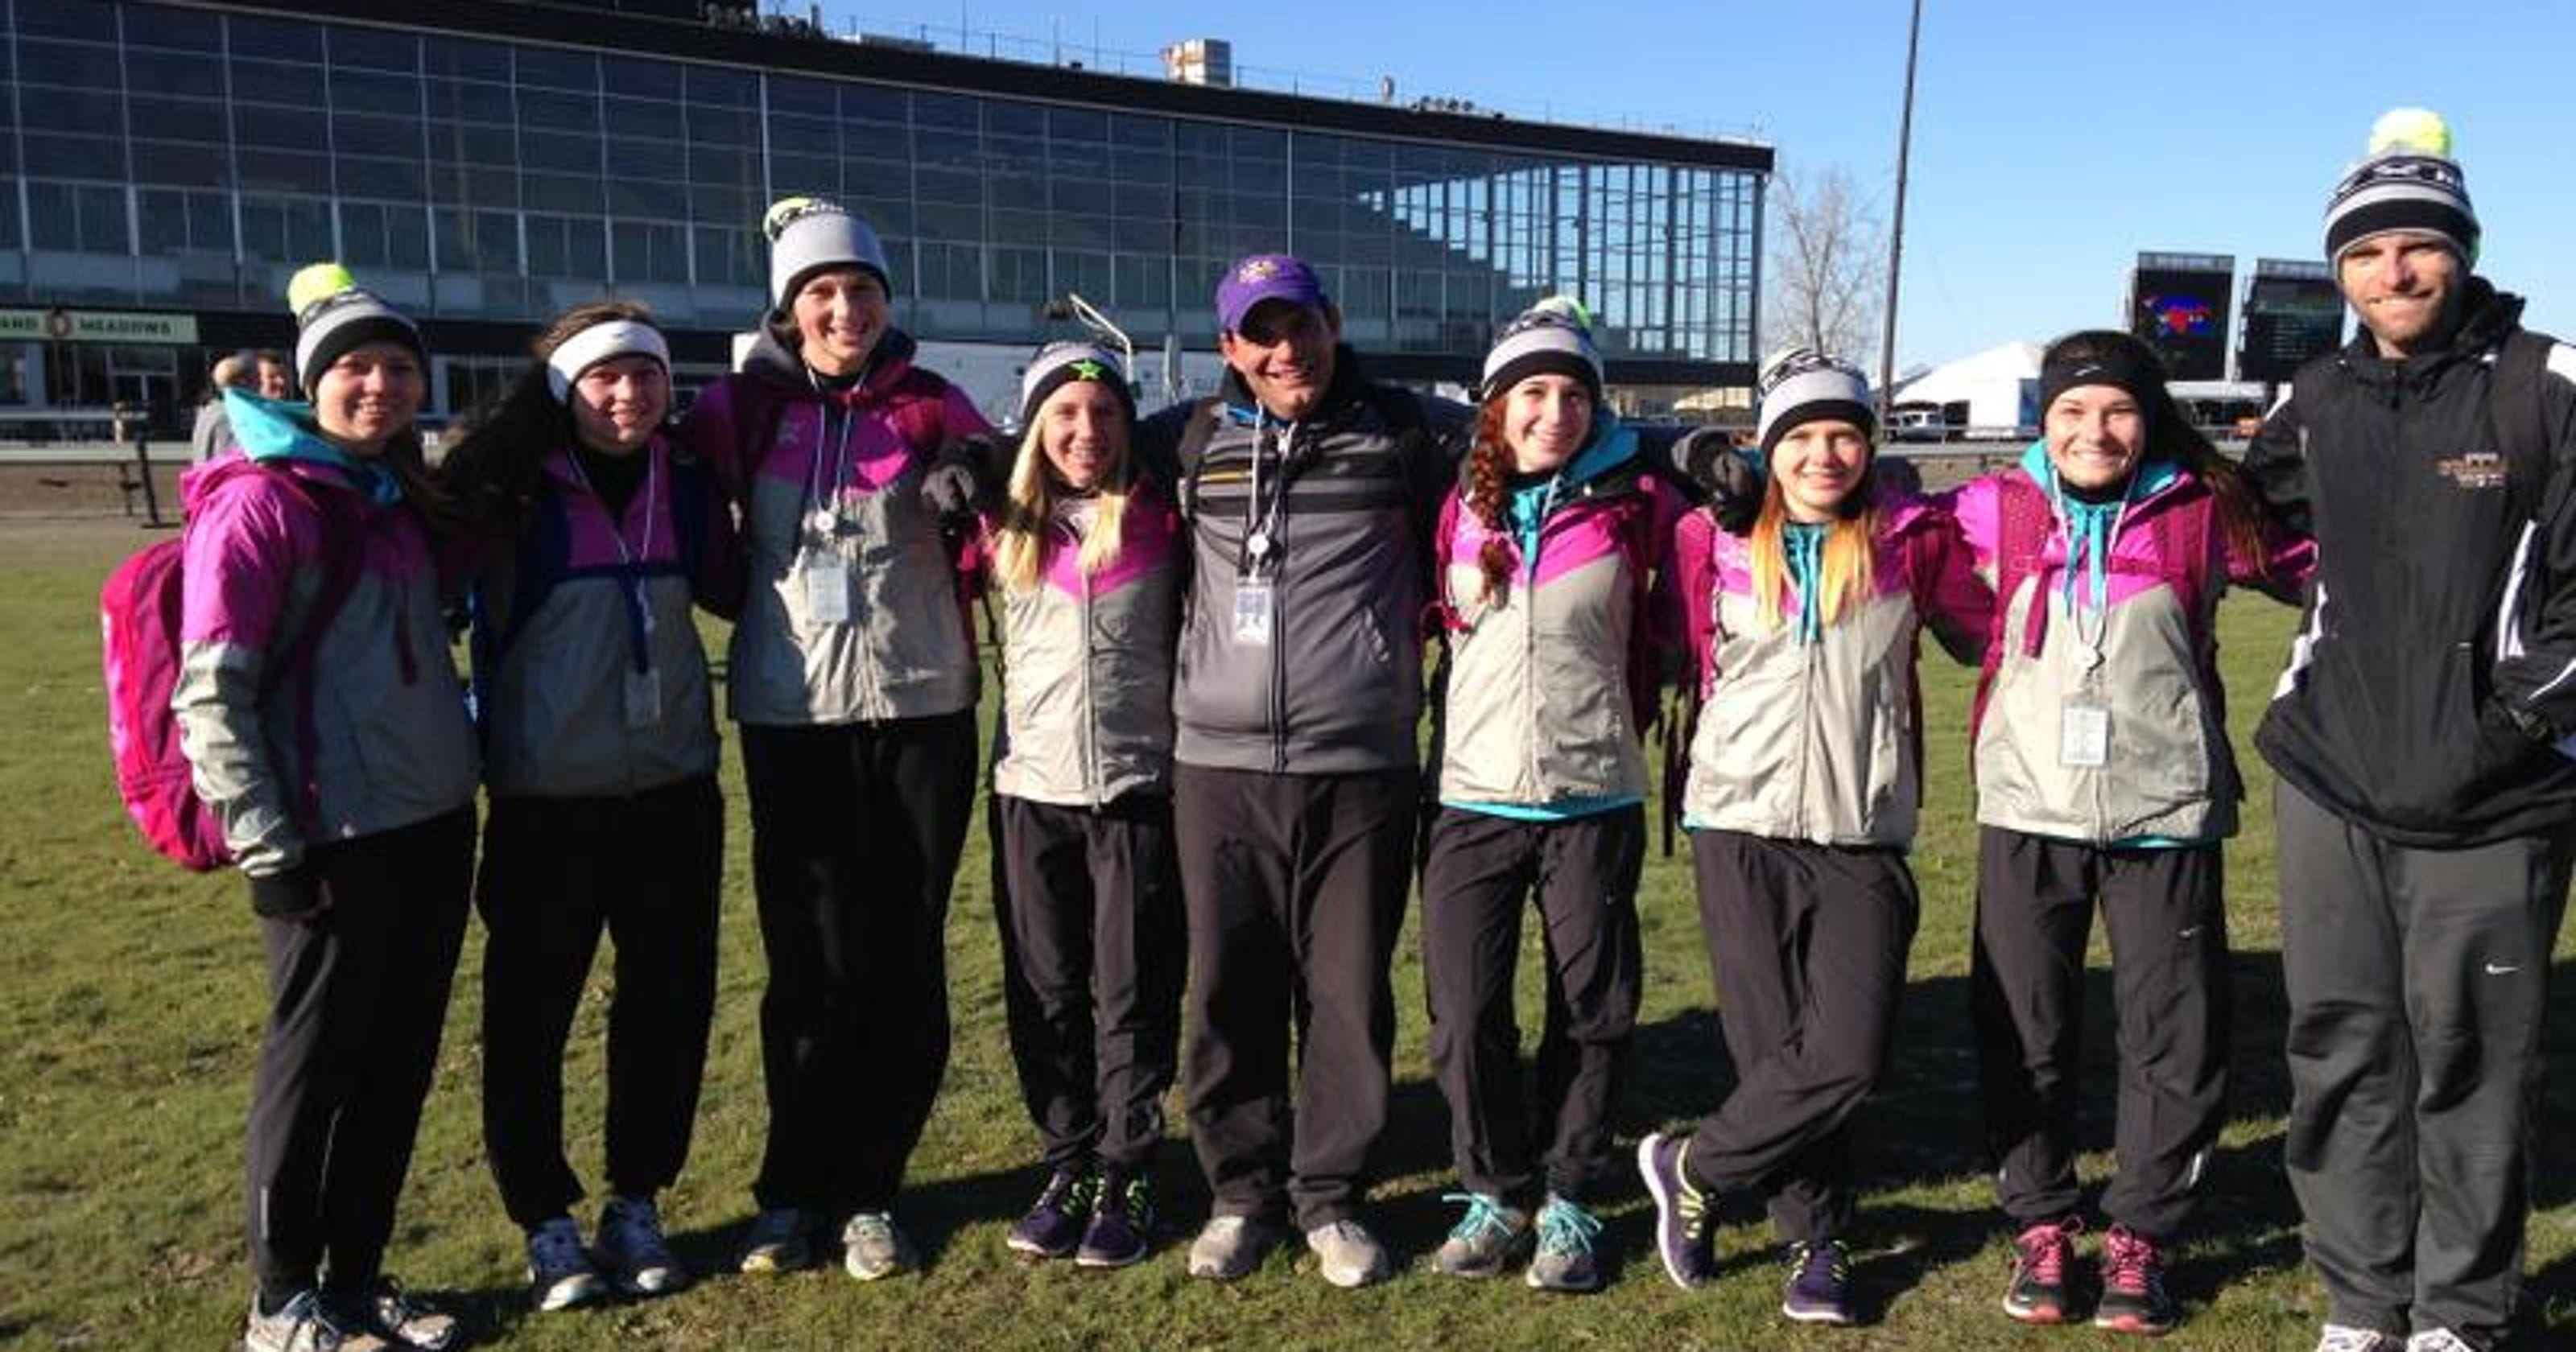 differently 2b0c1 a67bf Fort Collins girls cross country team Top 10 at Nike nationals